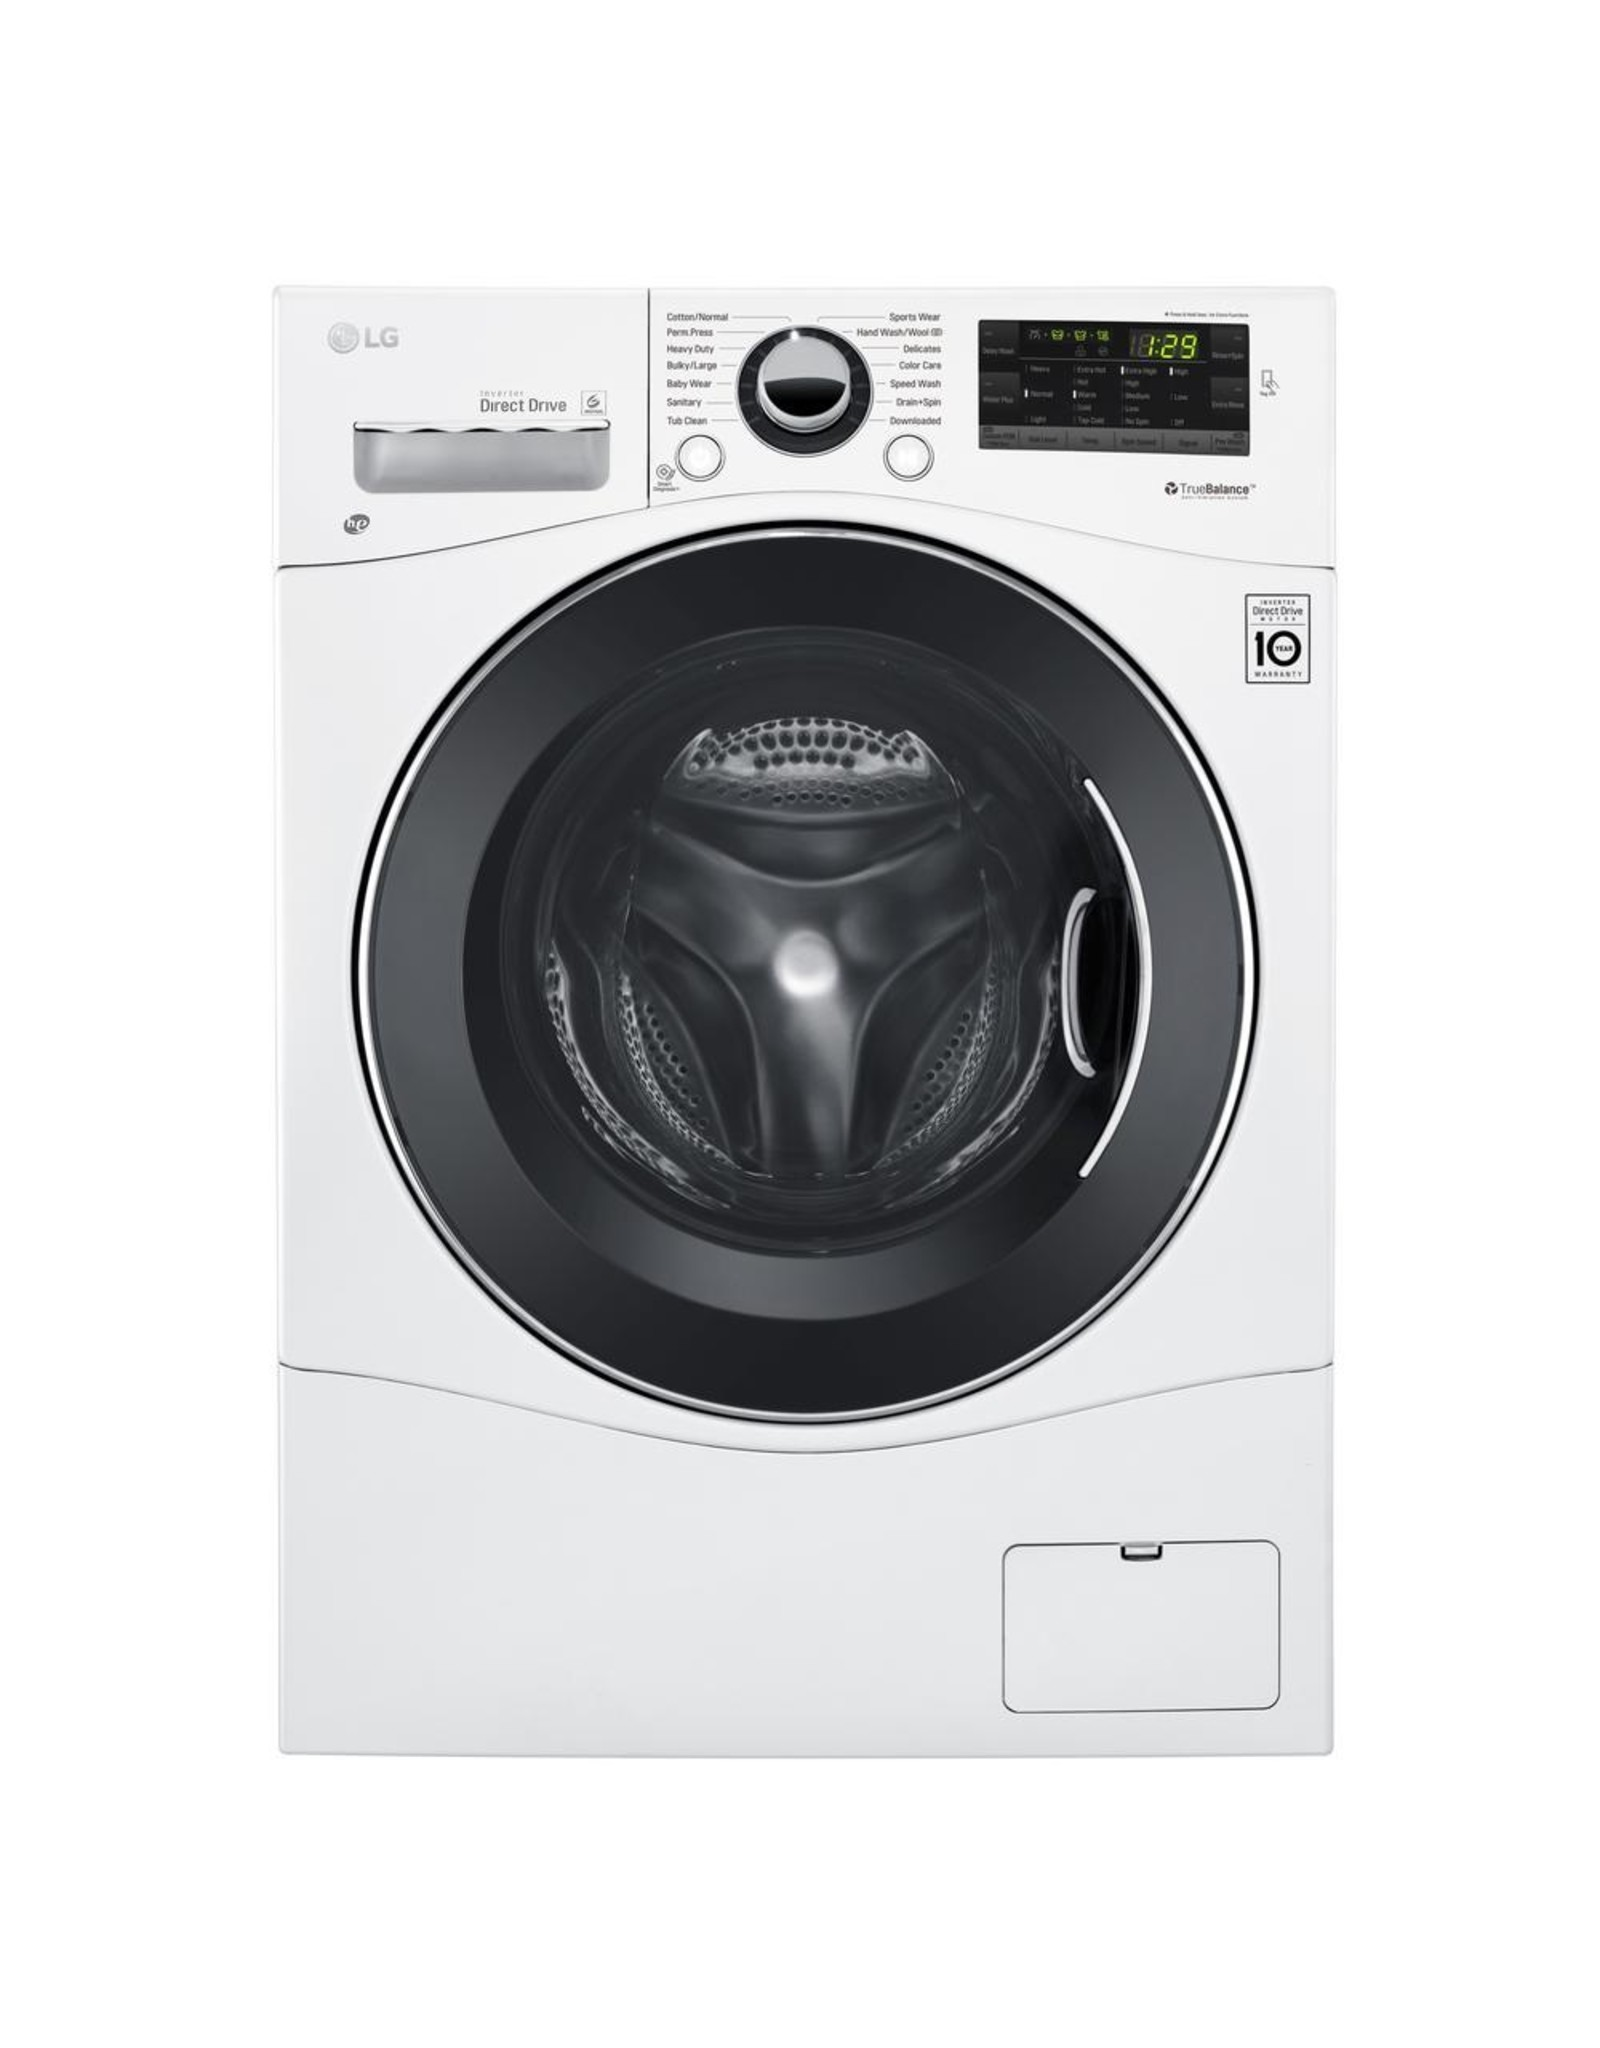 LG Electronics WM1388HW 2.3 cu. ft. High Efficiency Compact Front Load Washer in White, ENERGY STAR